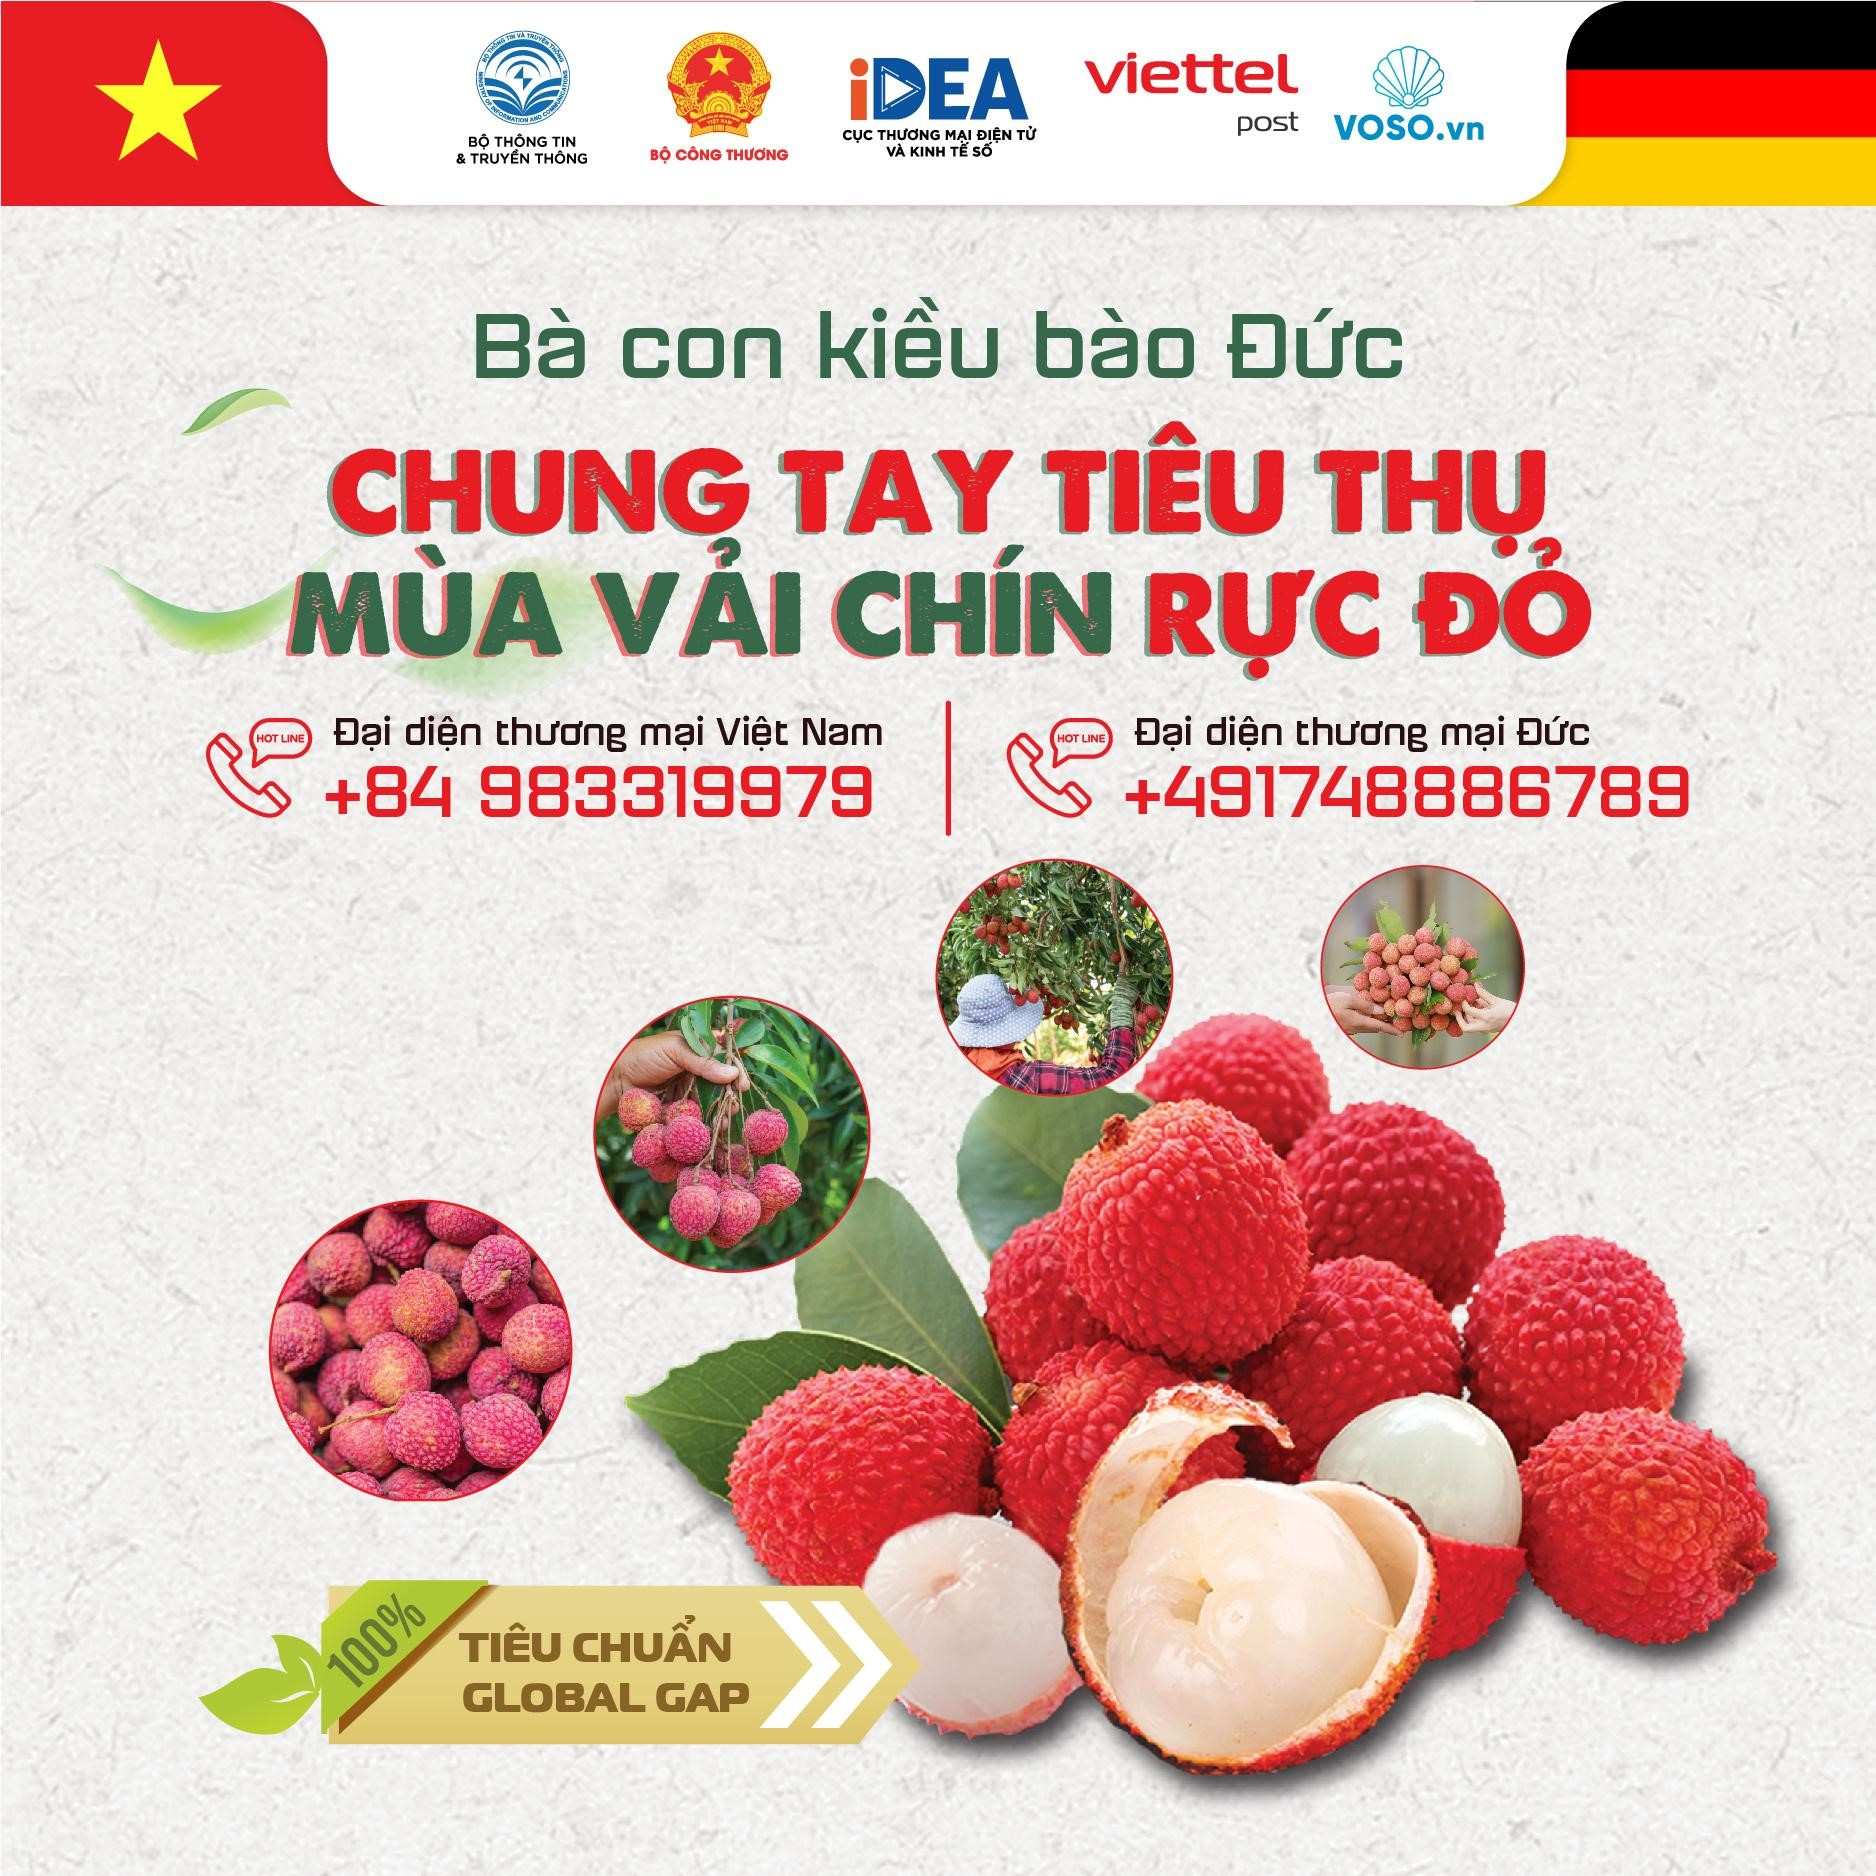 Bac Giang lychees, exported, European market, Bac Giang province, local customers, E-commerce platfrom, Voso, Viettel Post, GlobalGAP procedure